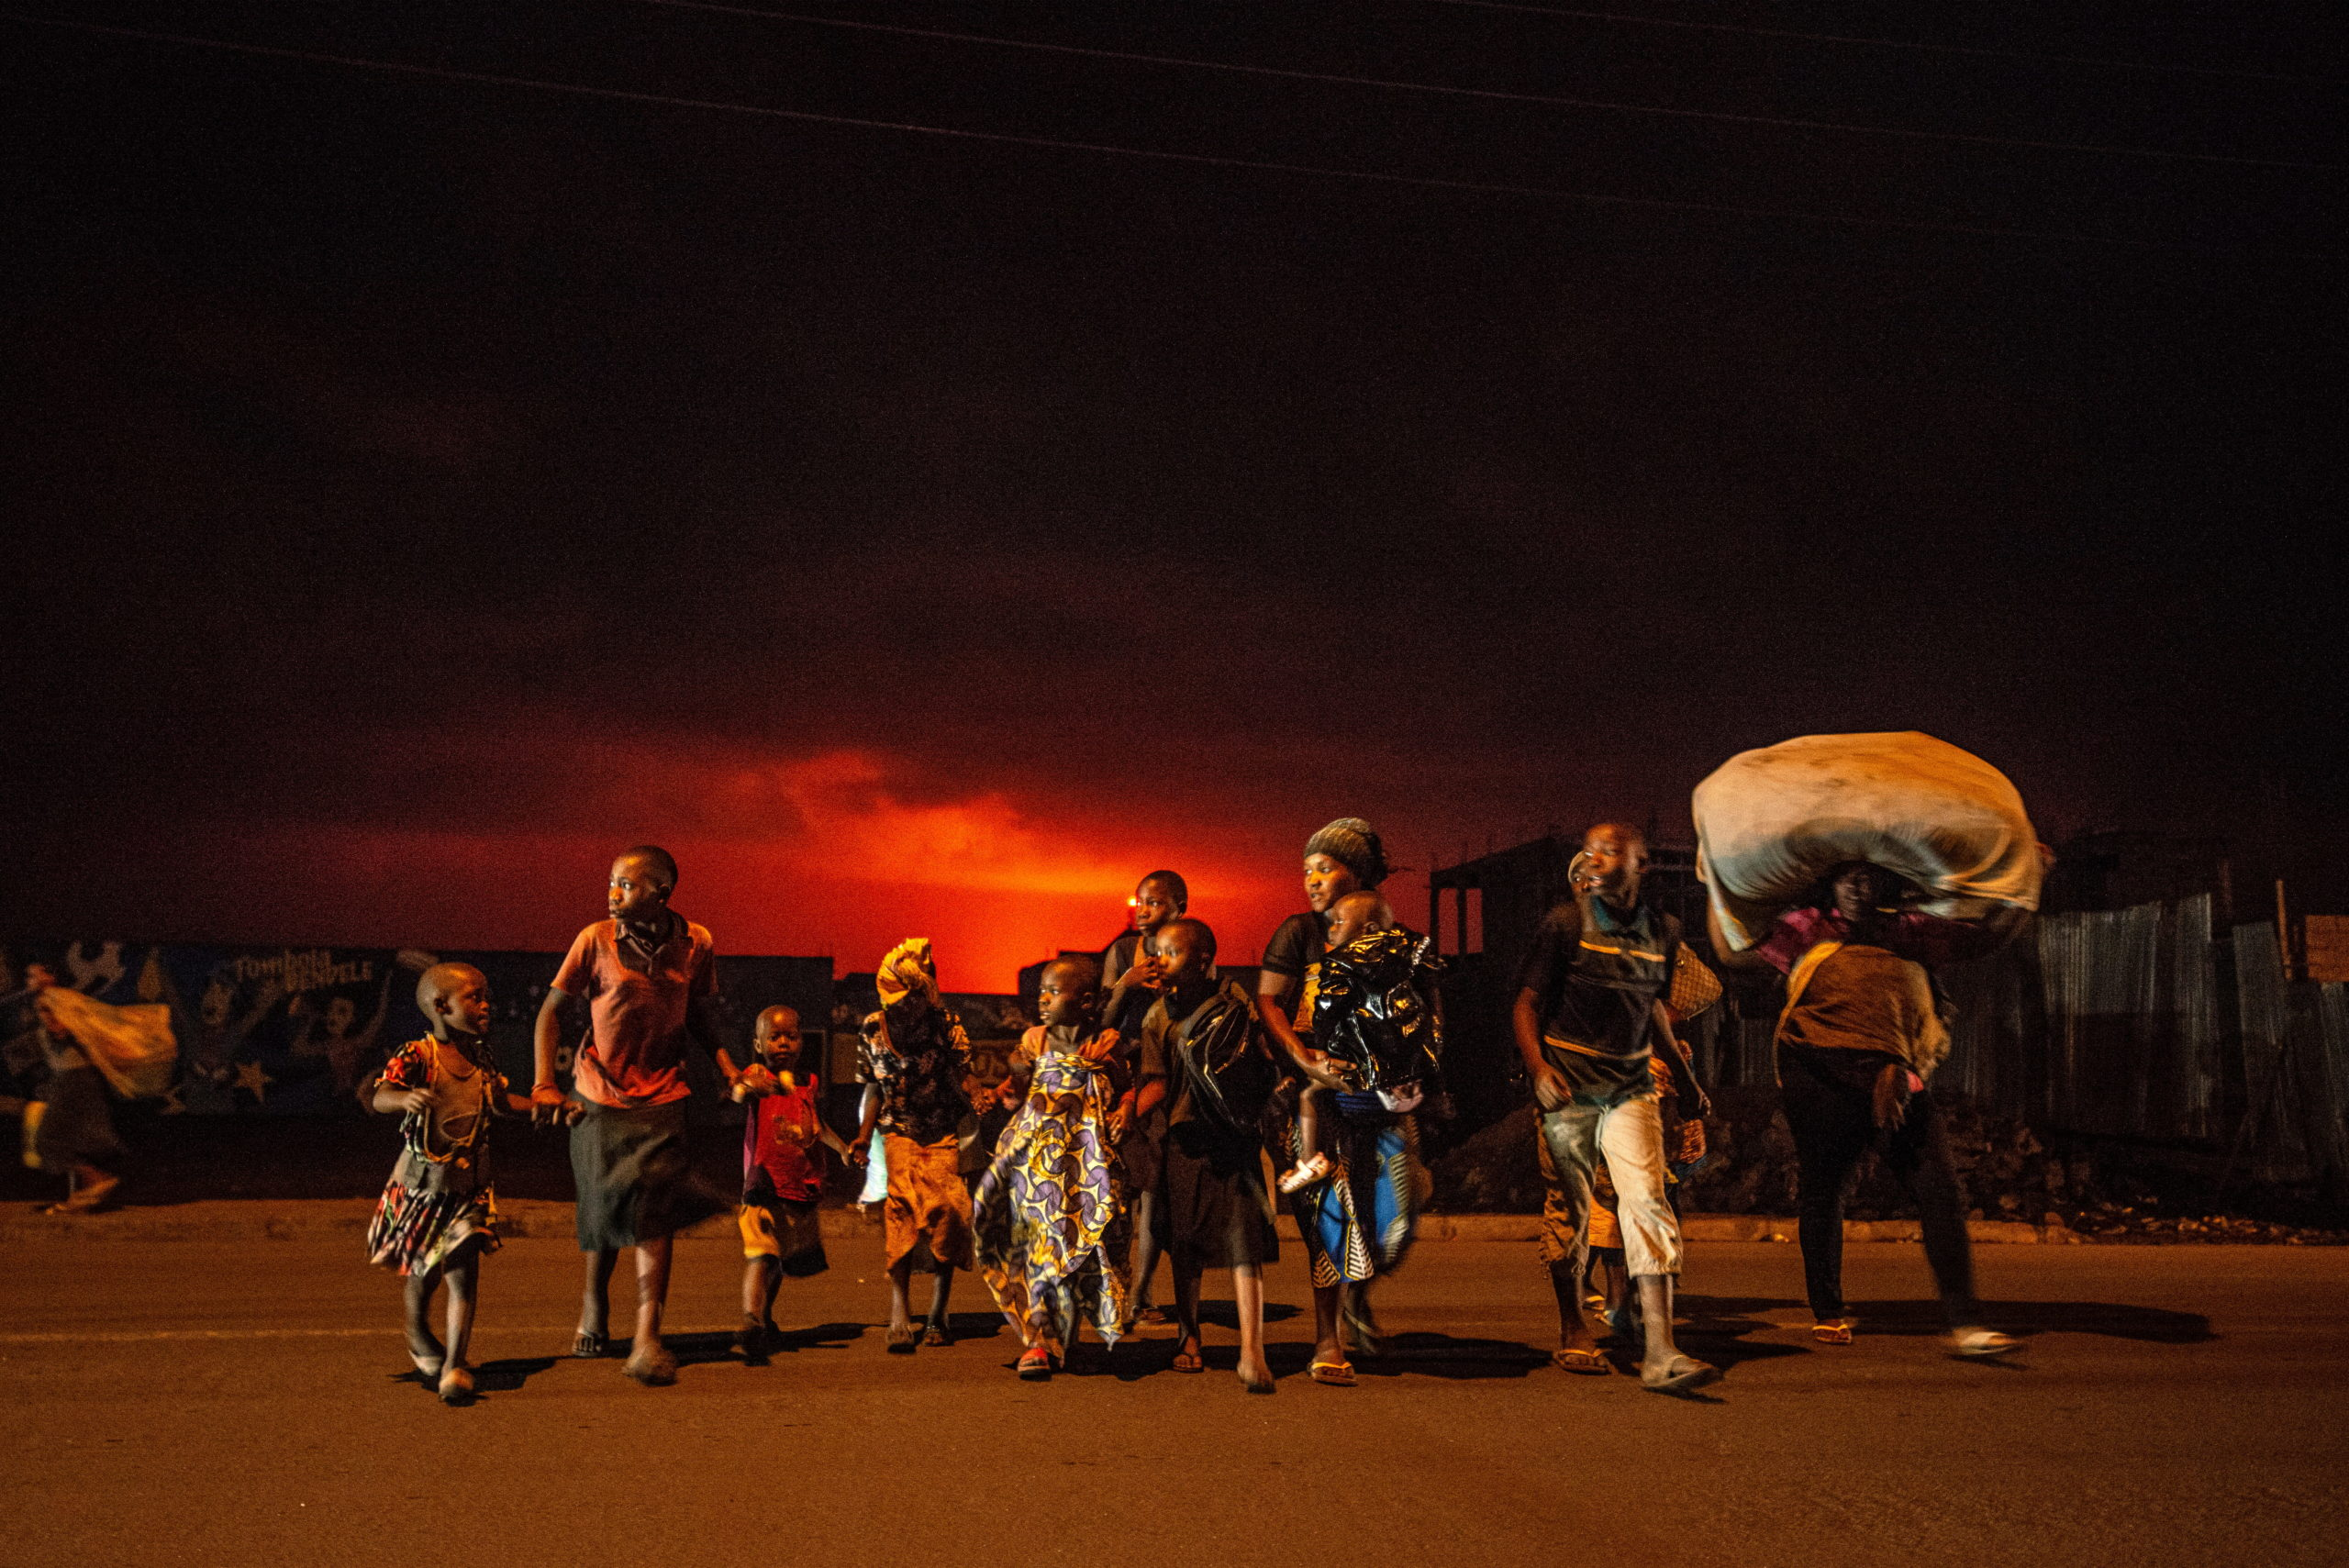 Goma, South Kivu, May 22 2021. At night, residents flee the eruption of Nyiragongo volcano. This image was among the first that Fondation Carmignac's Congo in Conversation contributor Guerchom Ndebo filed to Agence France-Presse within hours of the eruption and it was widely published internationally. Guerchom Ndebo for Fondation Carmignac.